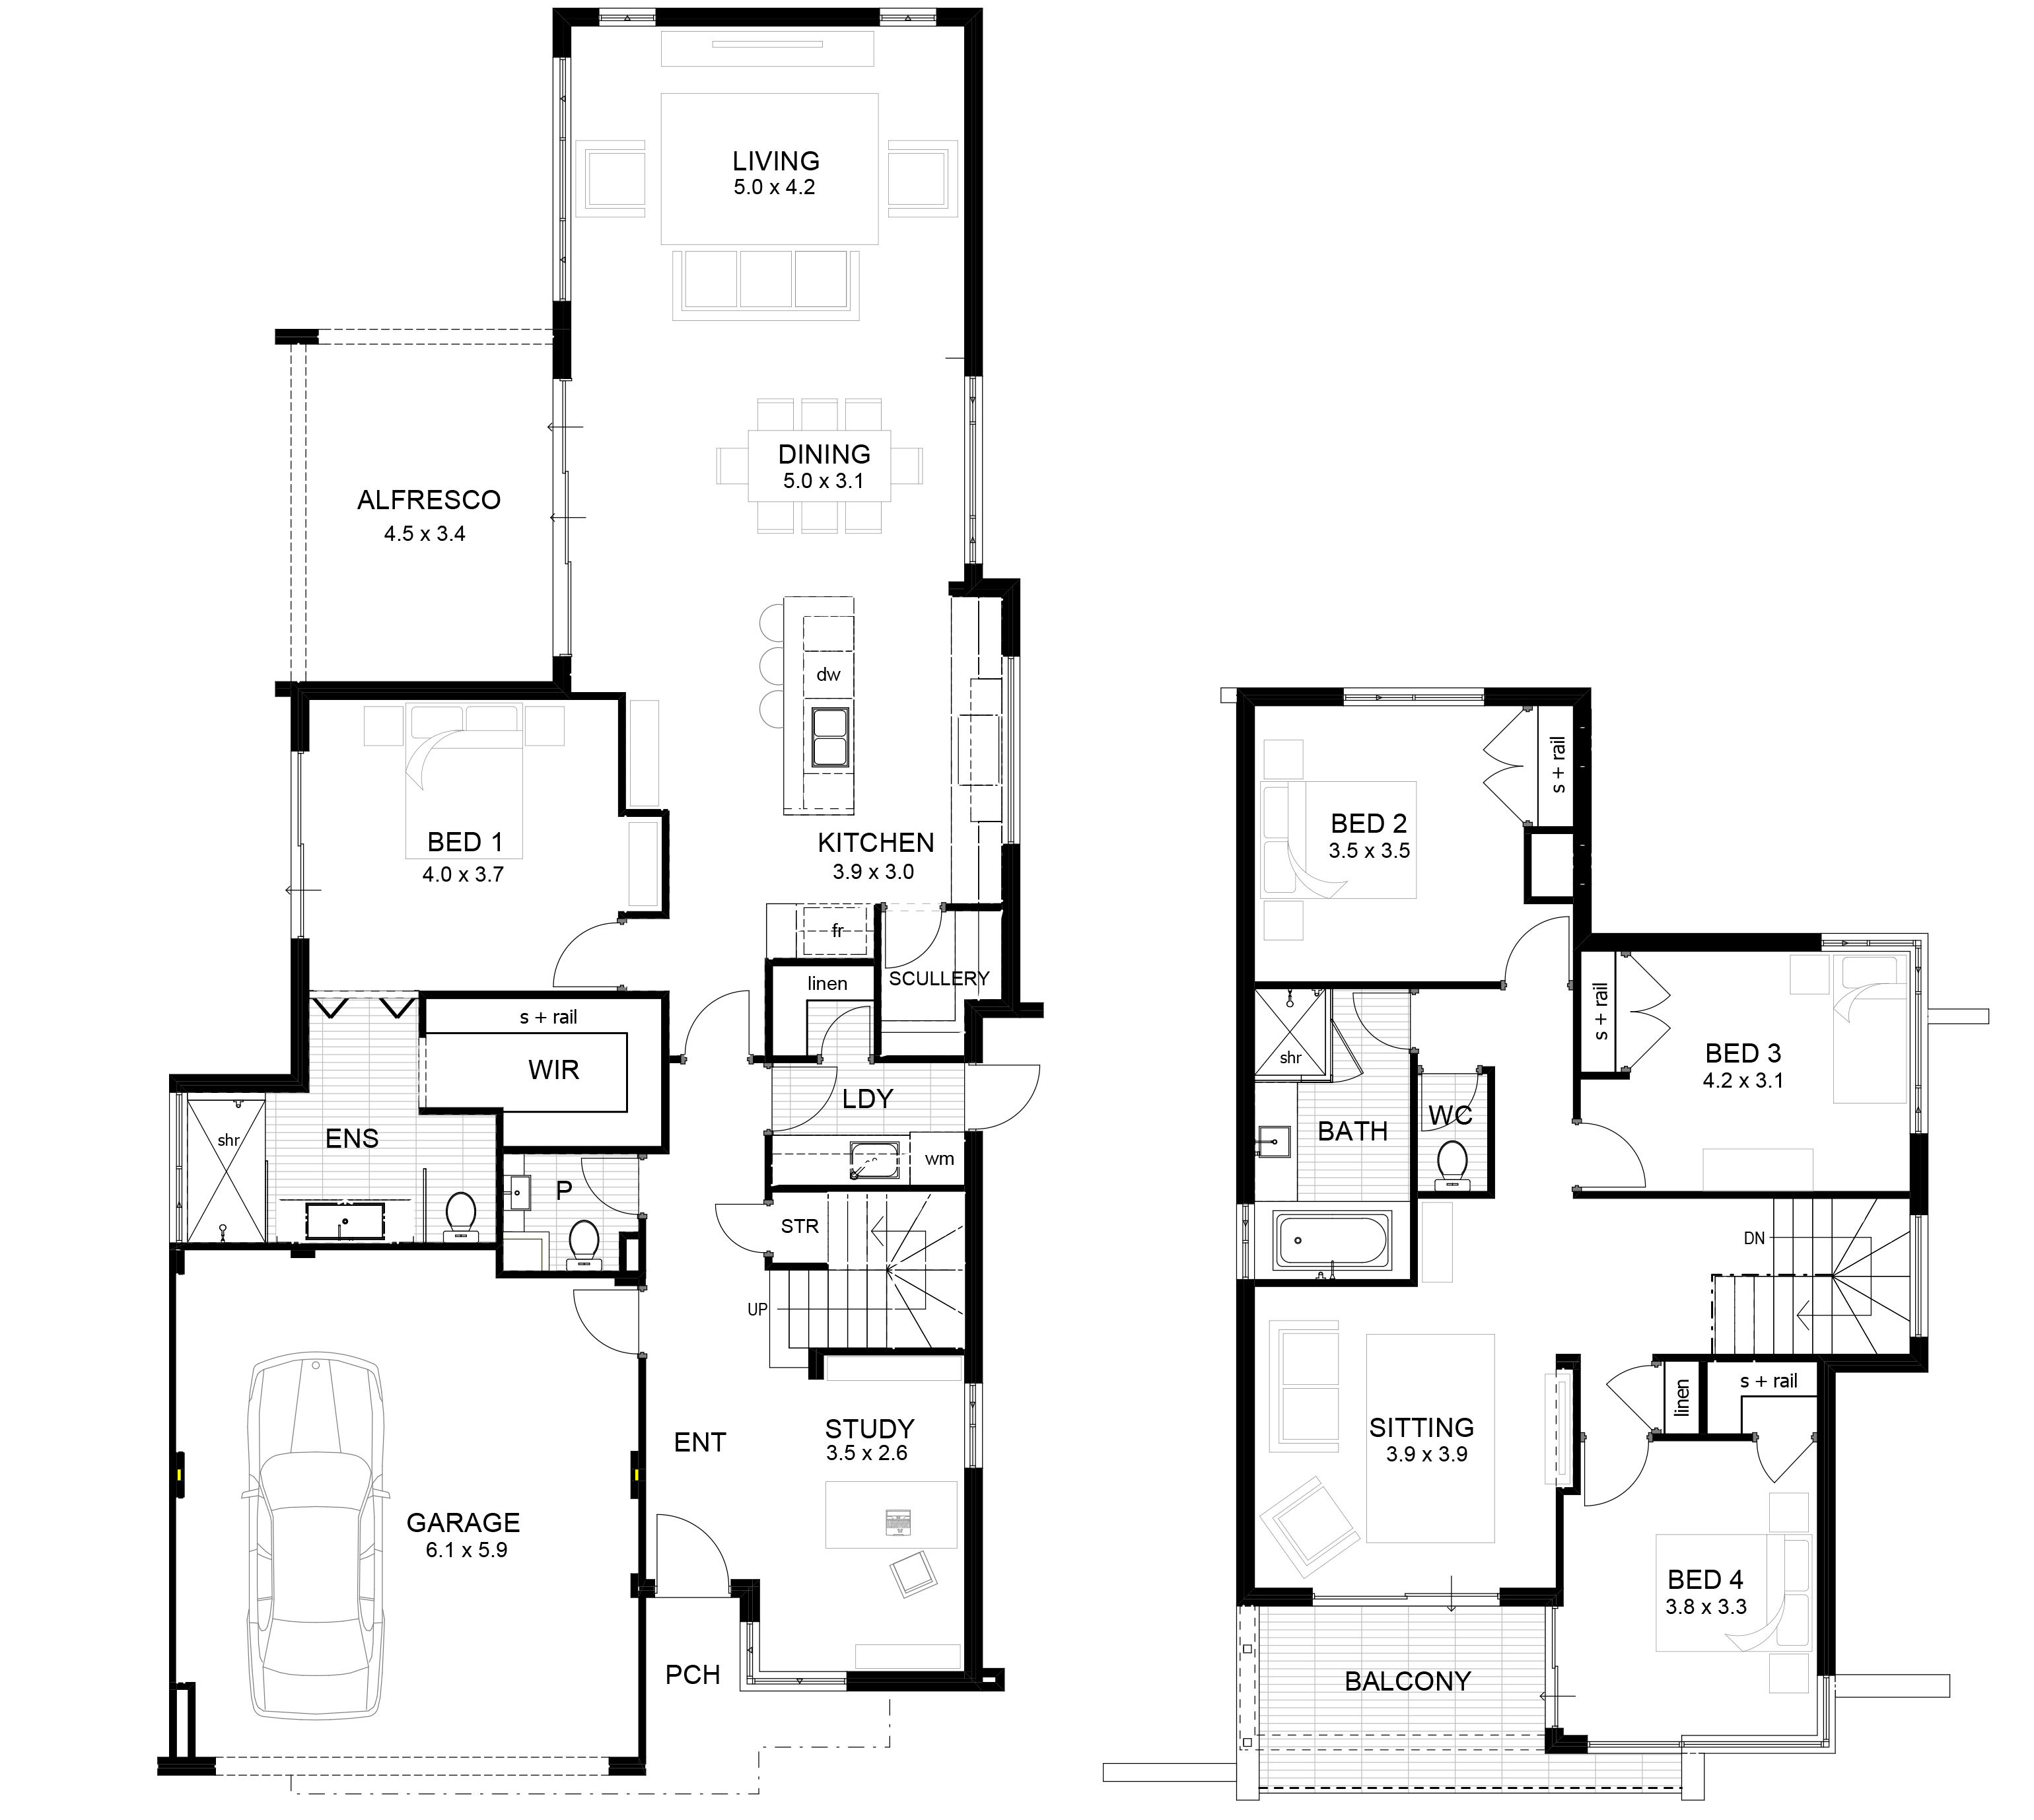 Two storey home designs apg homes dream home ideas for Loft home designs perth